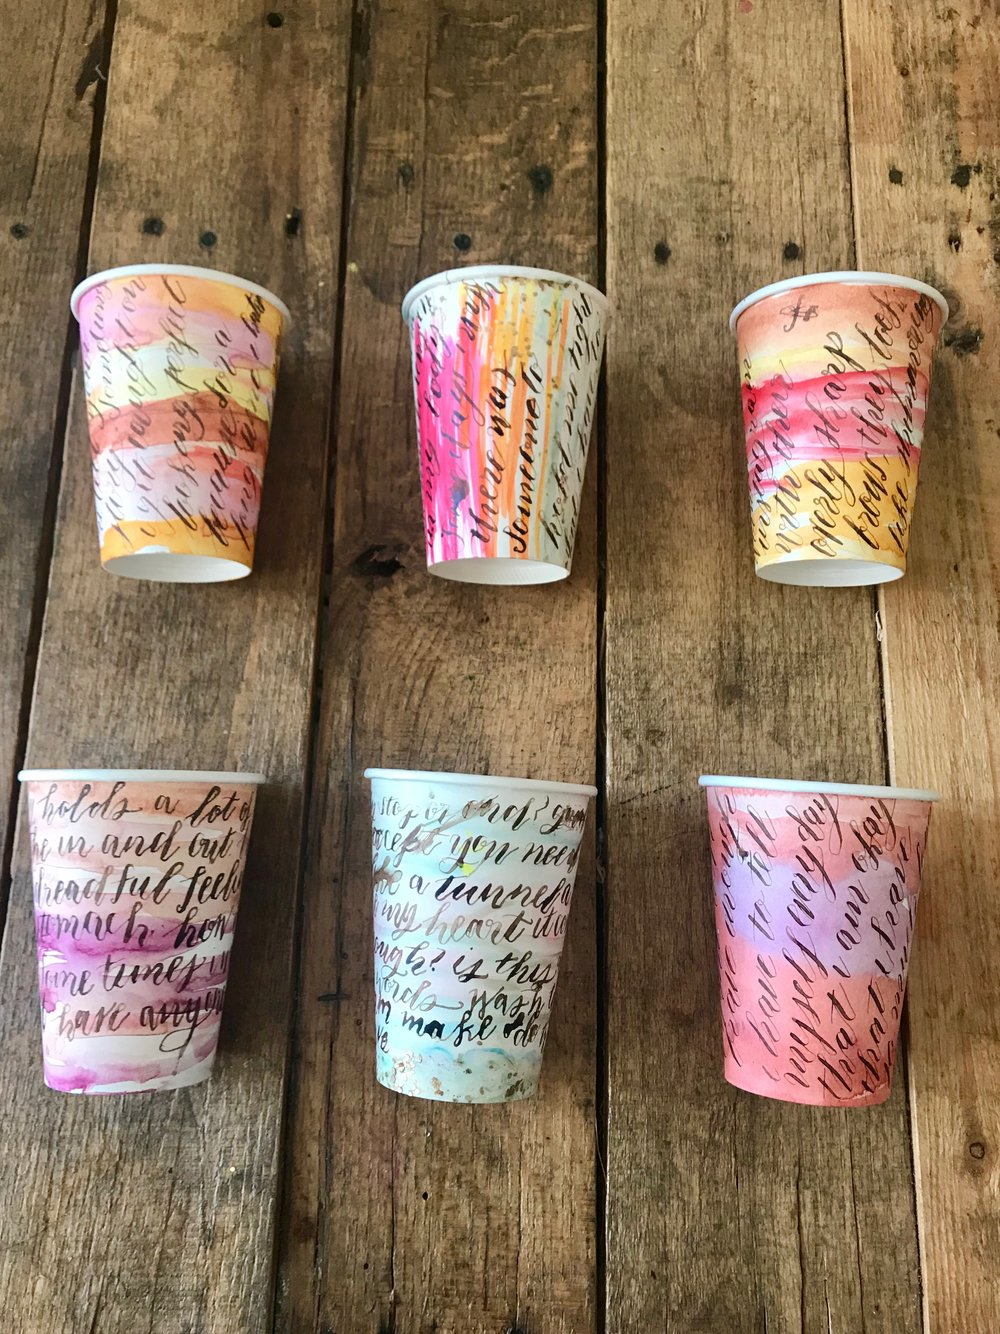 mixed media art on coffee cups, watercolor and calligraphy